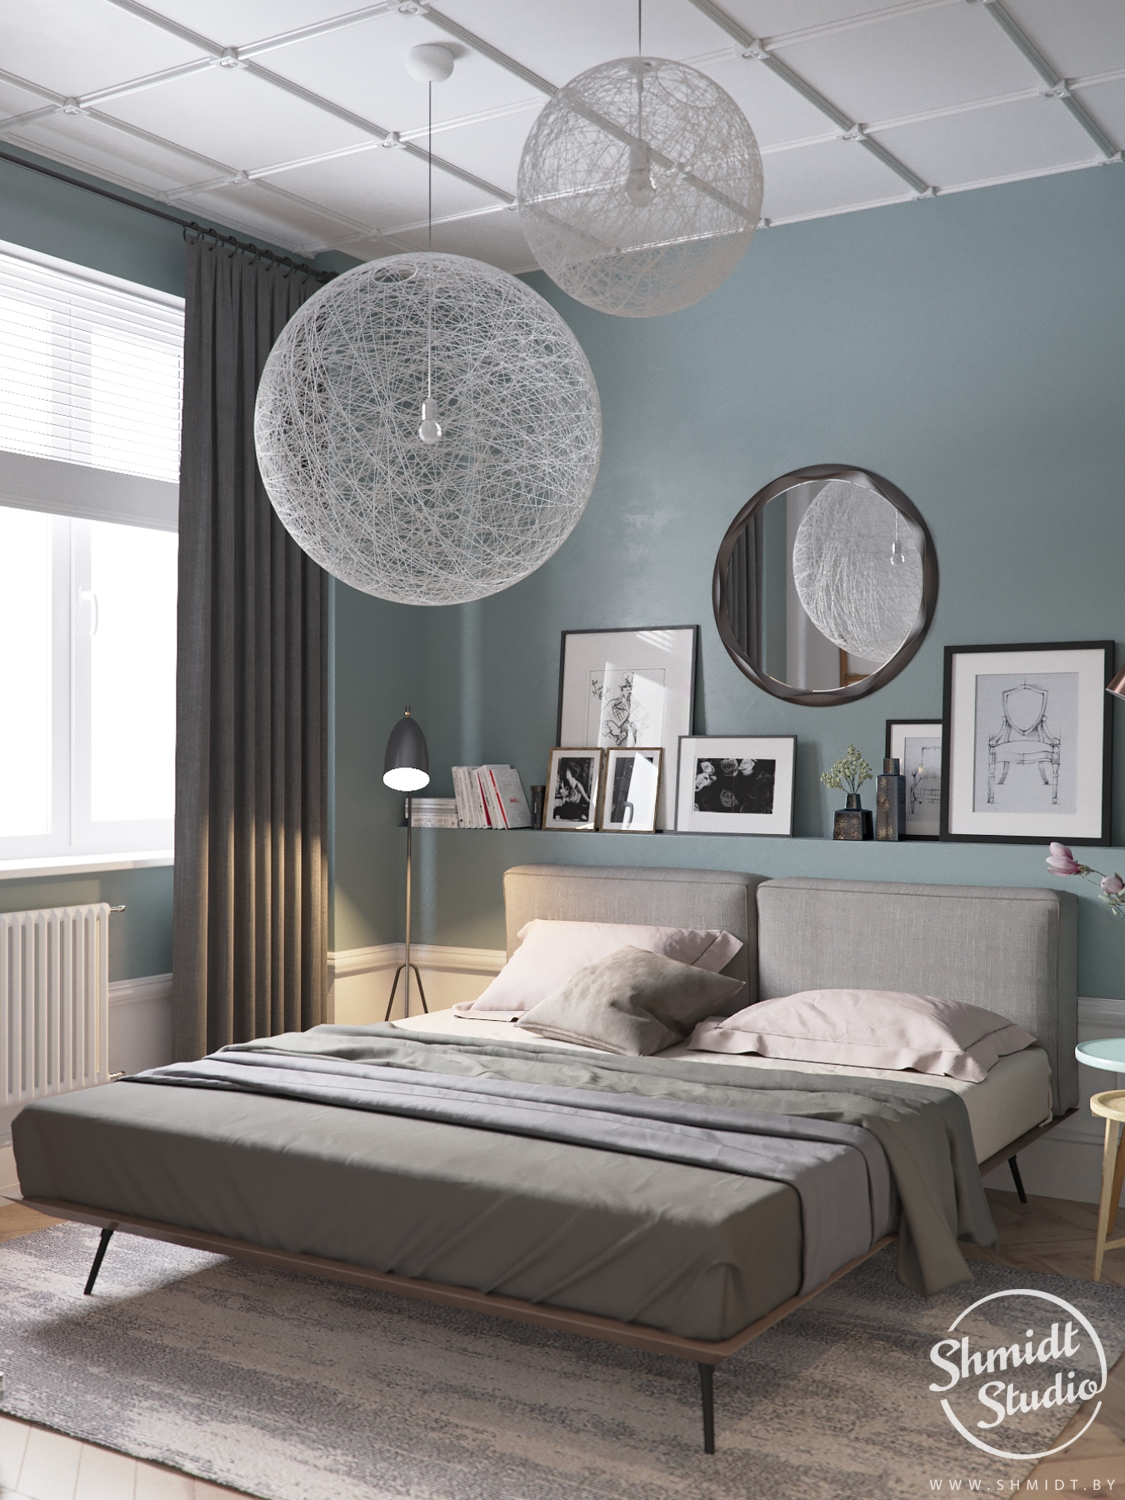 A Scandinavian Chic Style 3 Bedroom Apartment For A Young Family images 18